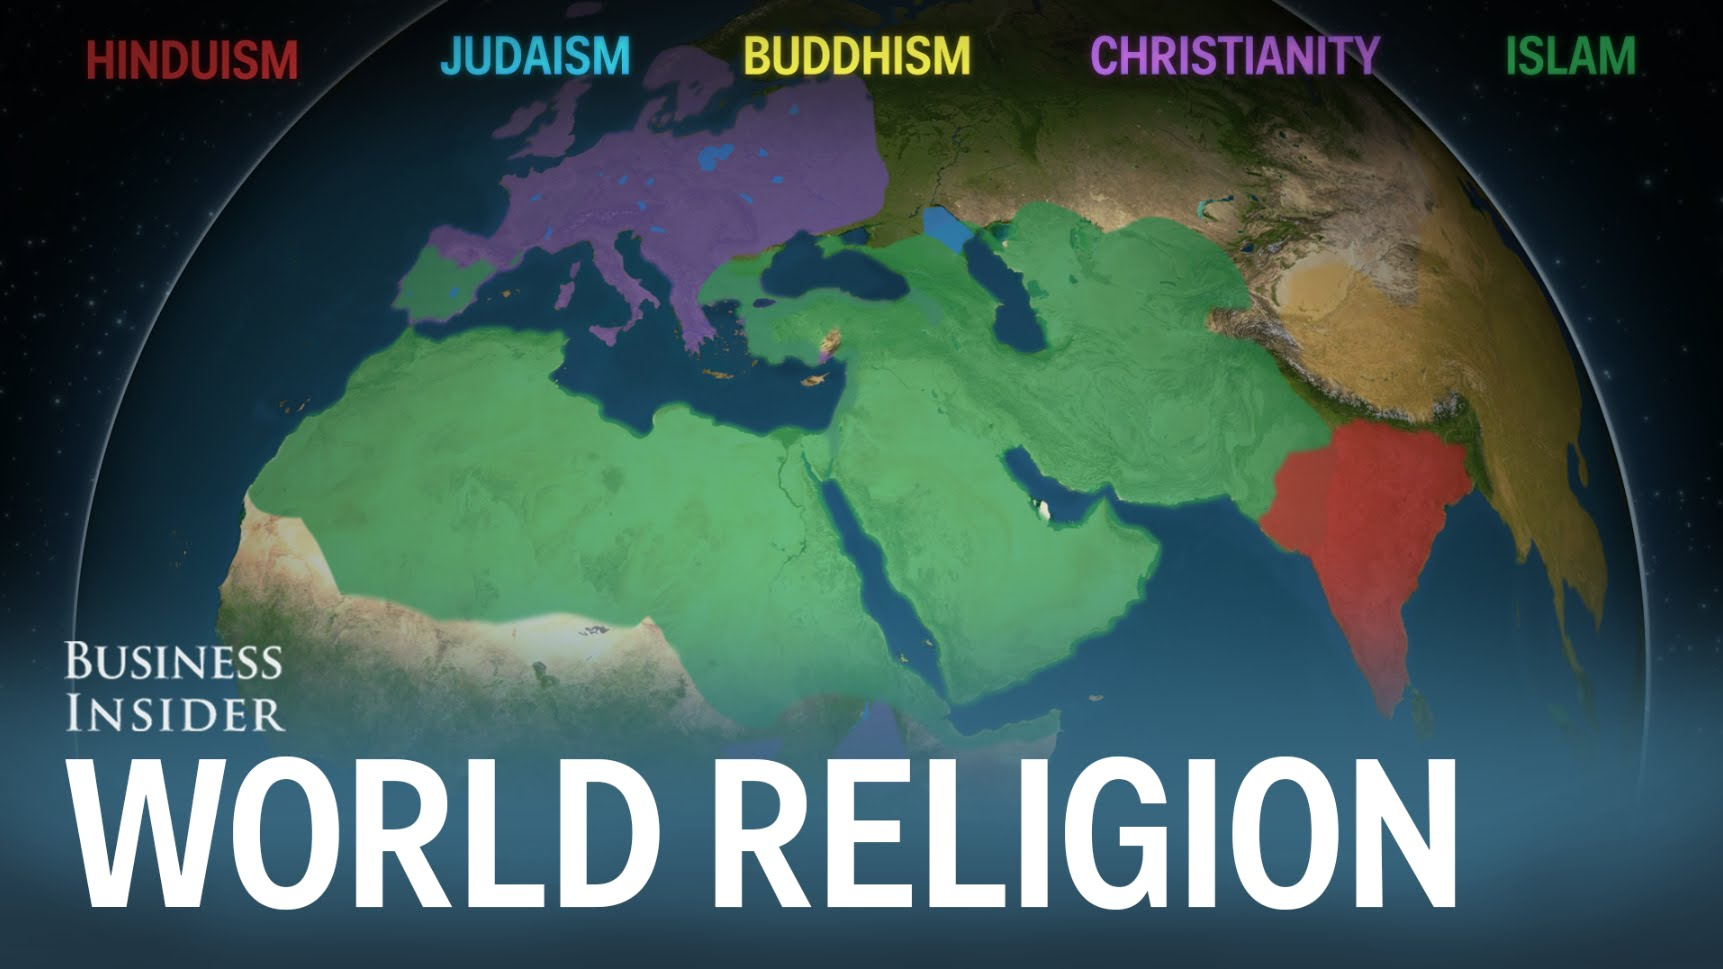 Spread of major religions of the world